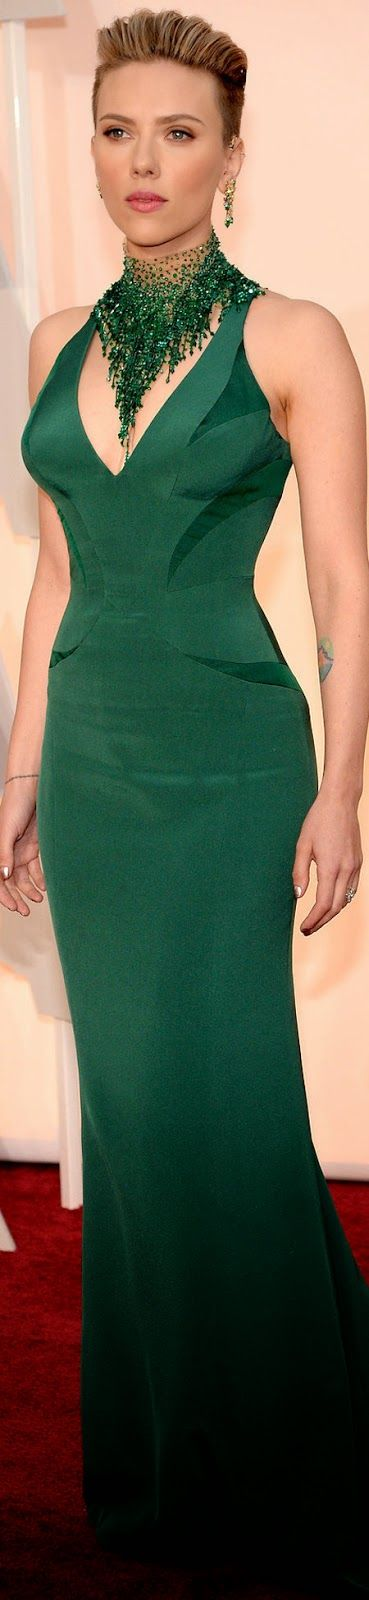 Scarlett Johansson accentuates her curvy figure in this emerald Versace number and matching necklace. 2015 Oscar Red Carpet